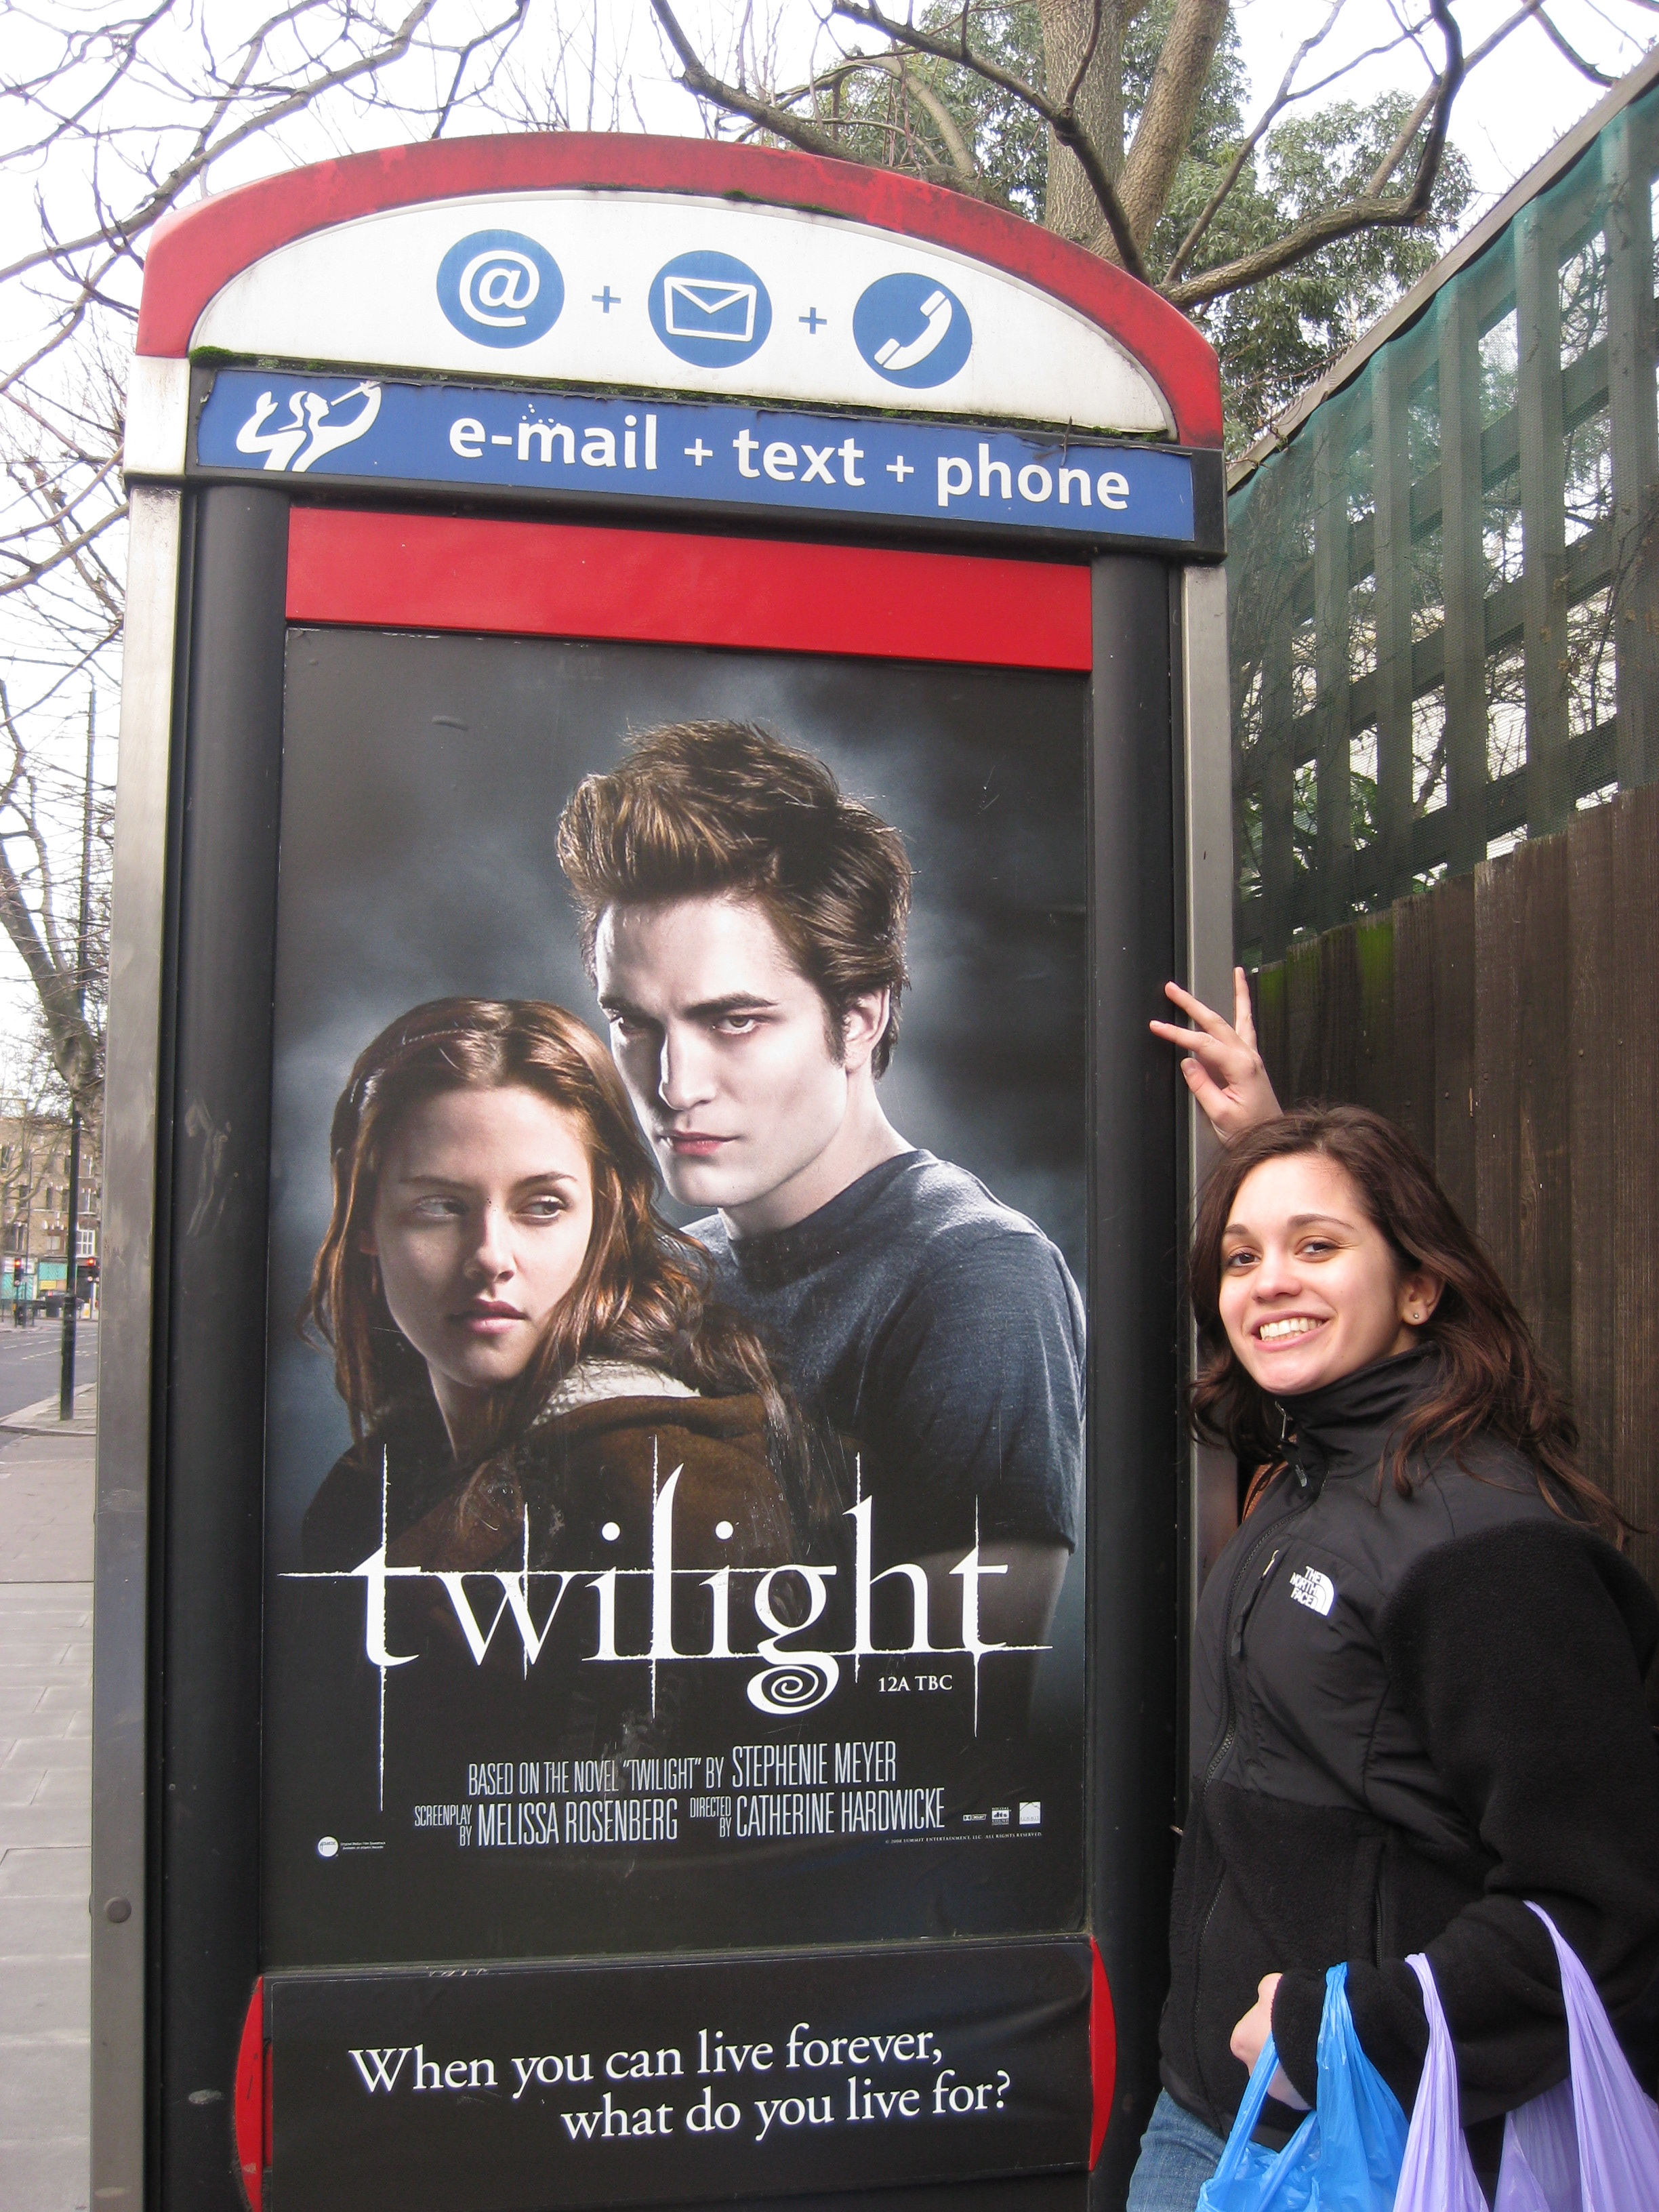 Me in London. I sent this picture back home to my Edward-obsessed friends